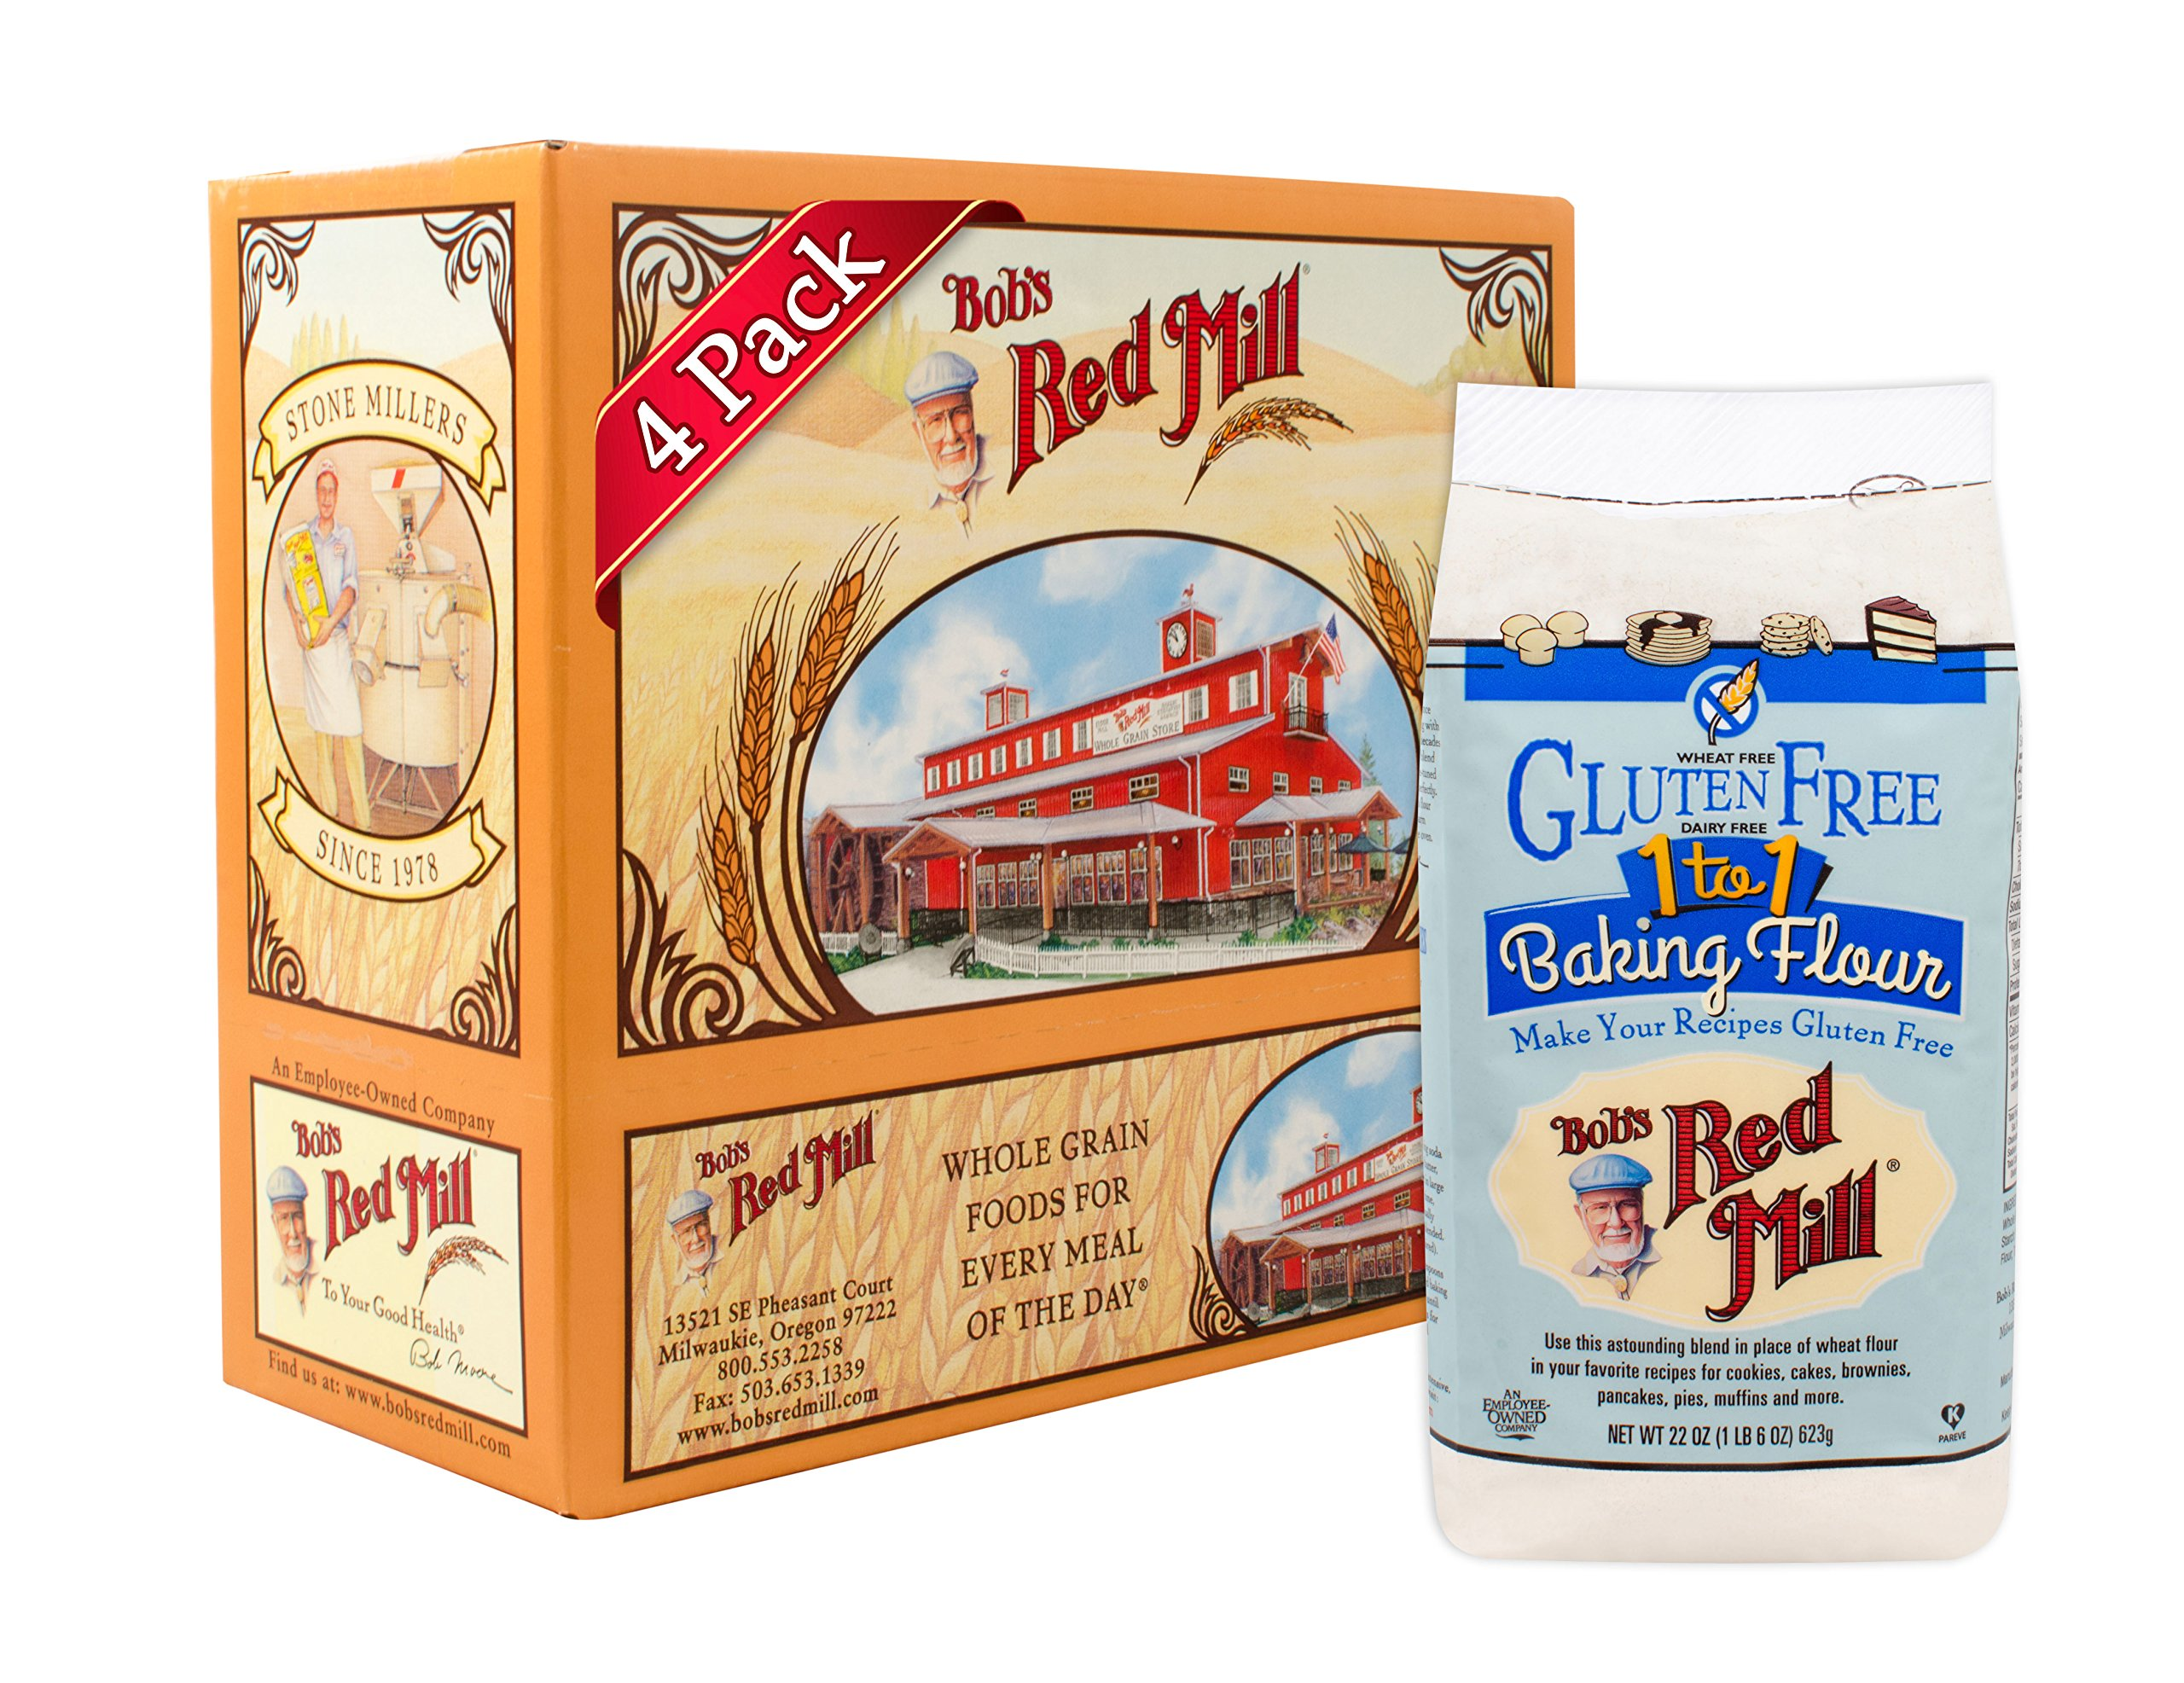 Bob's Red Mill Gluten Free 1-to-1 Baking Flour, 22 Ounce (Pack of 4) by Bob's Red Mill (Image #1)